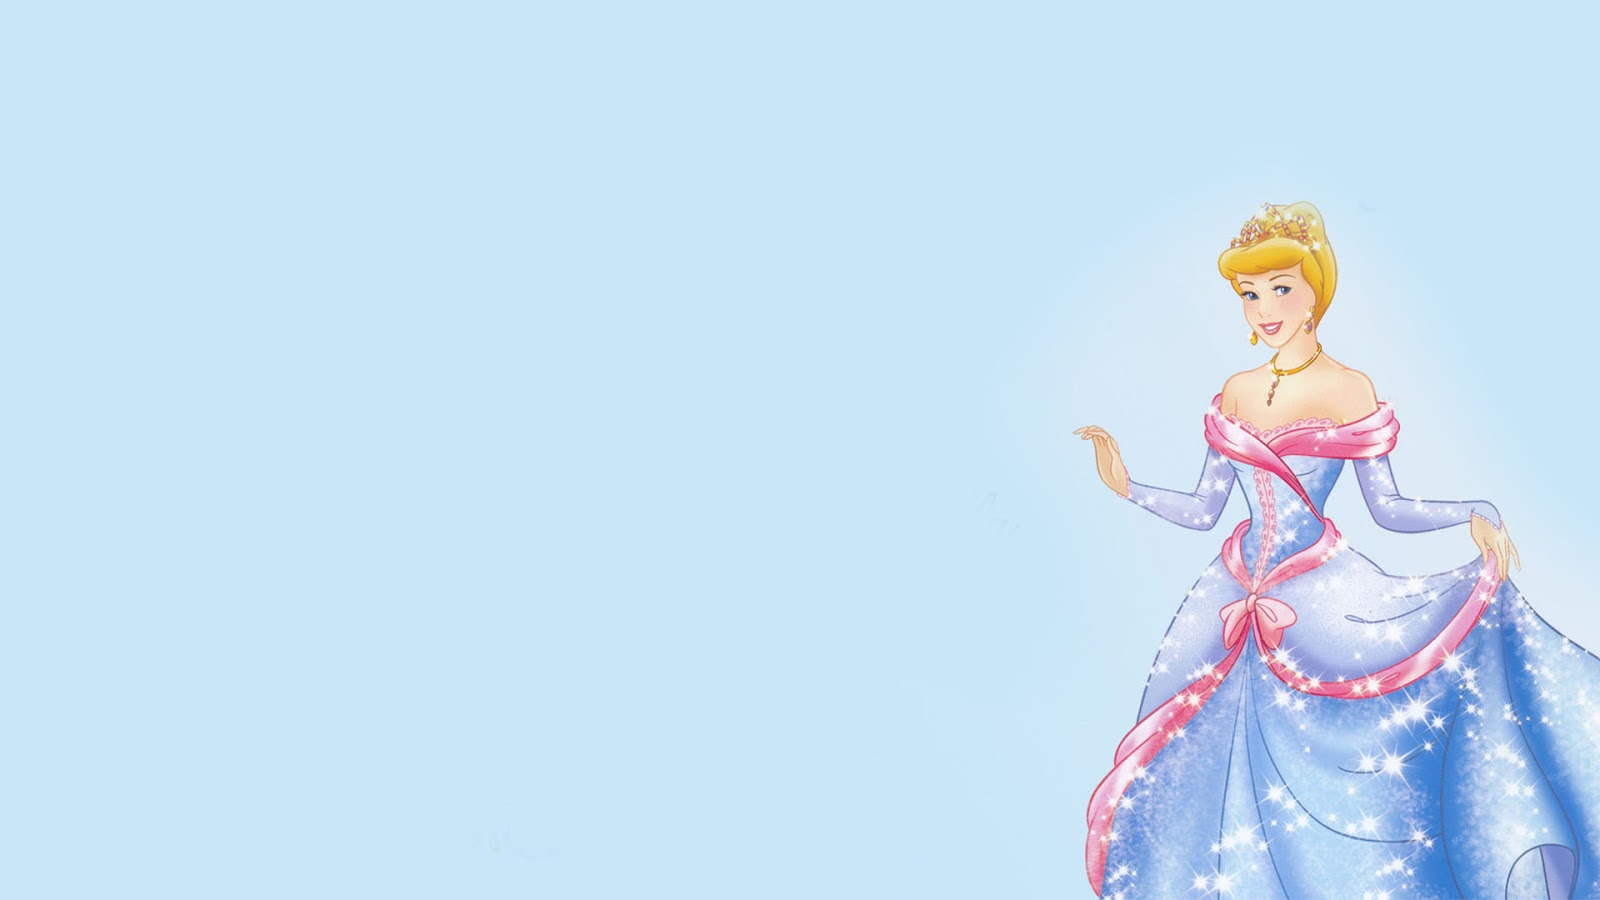 cinderella hd wallpapers high definition free background